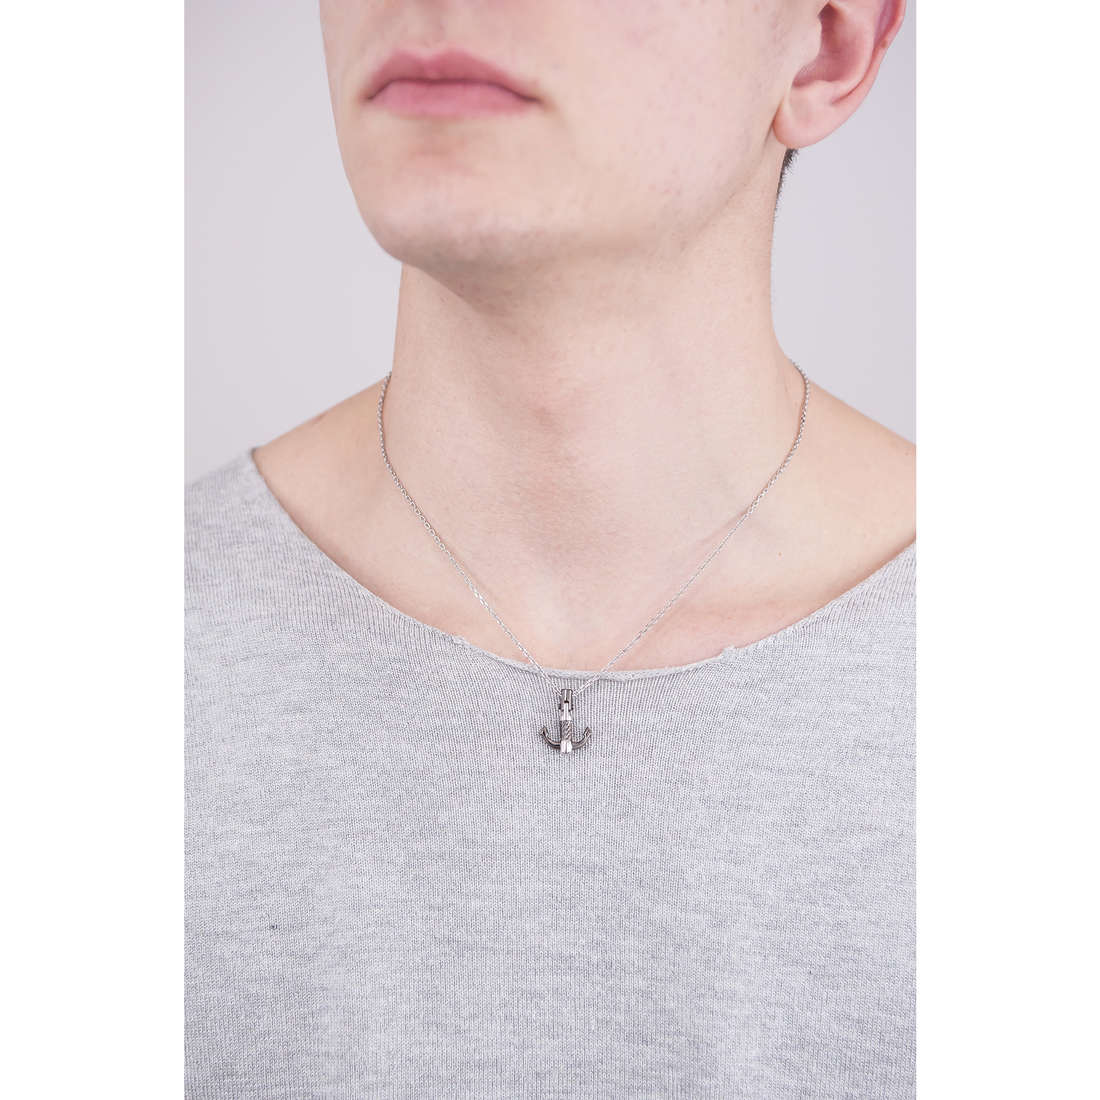 Brosway necklaces Bounty man BOU03 indosso